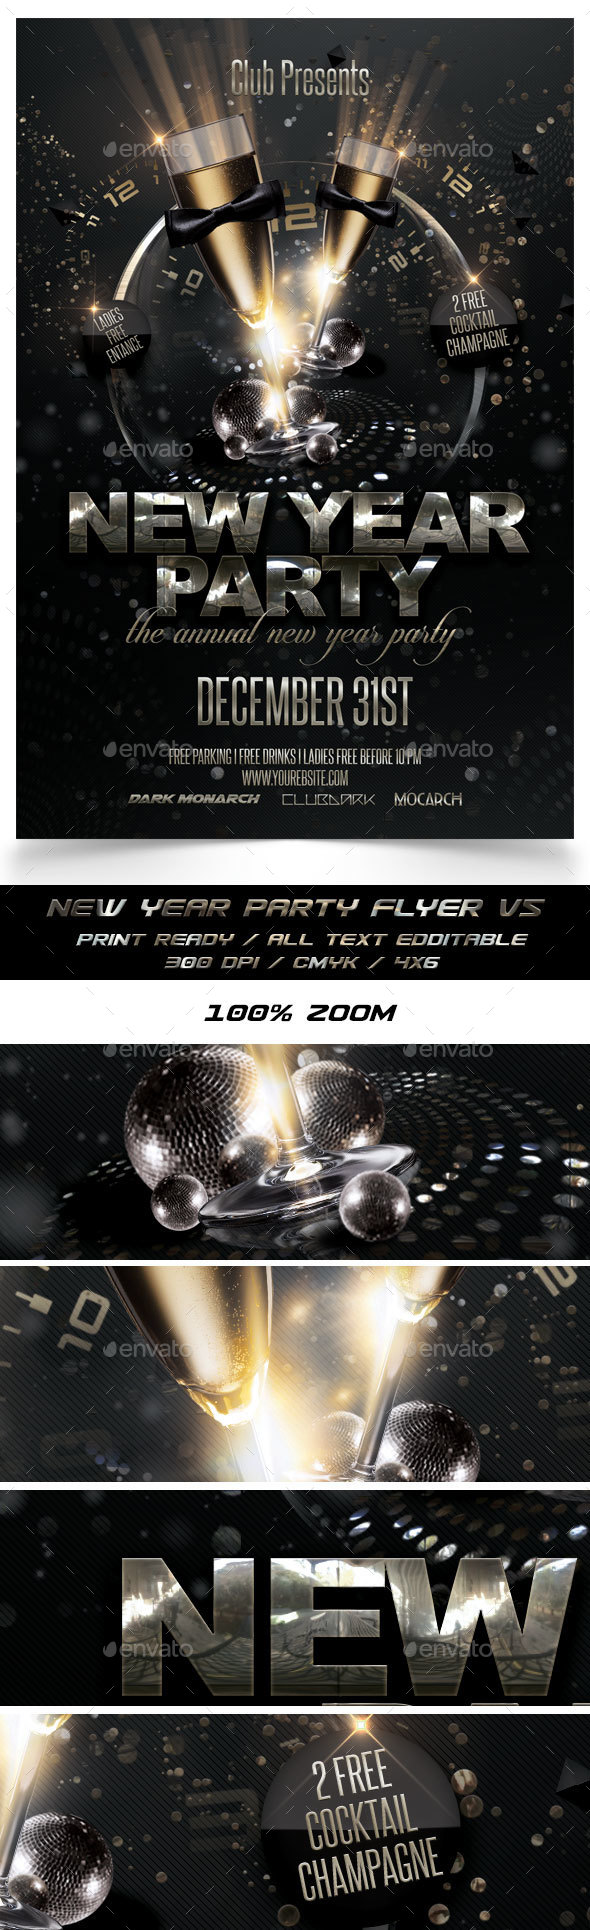 New Year Party Flyer V5 - Events Flyers